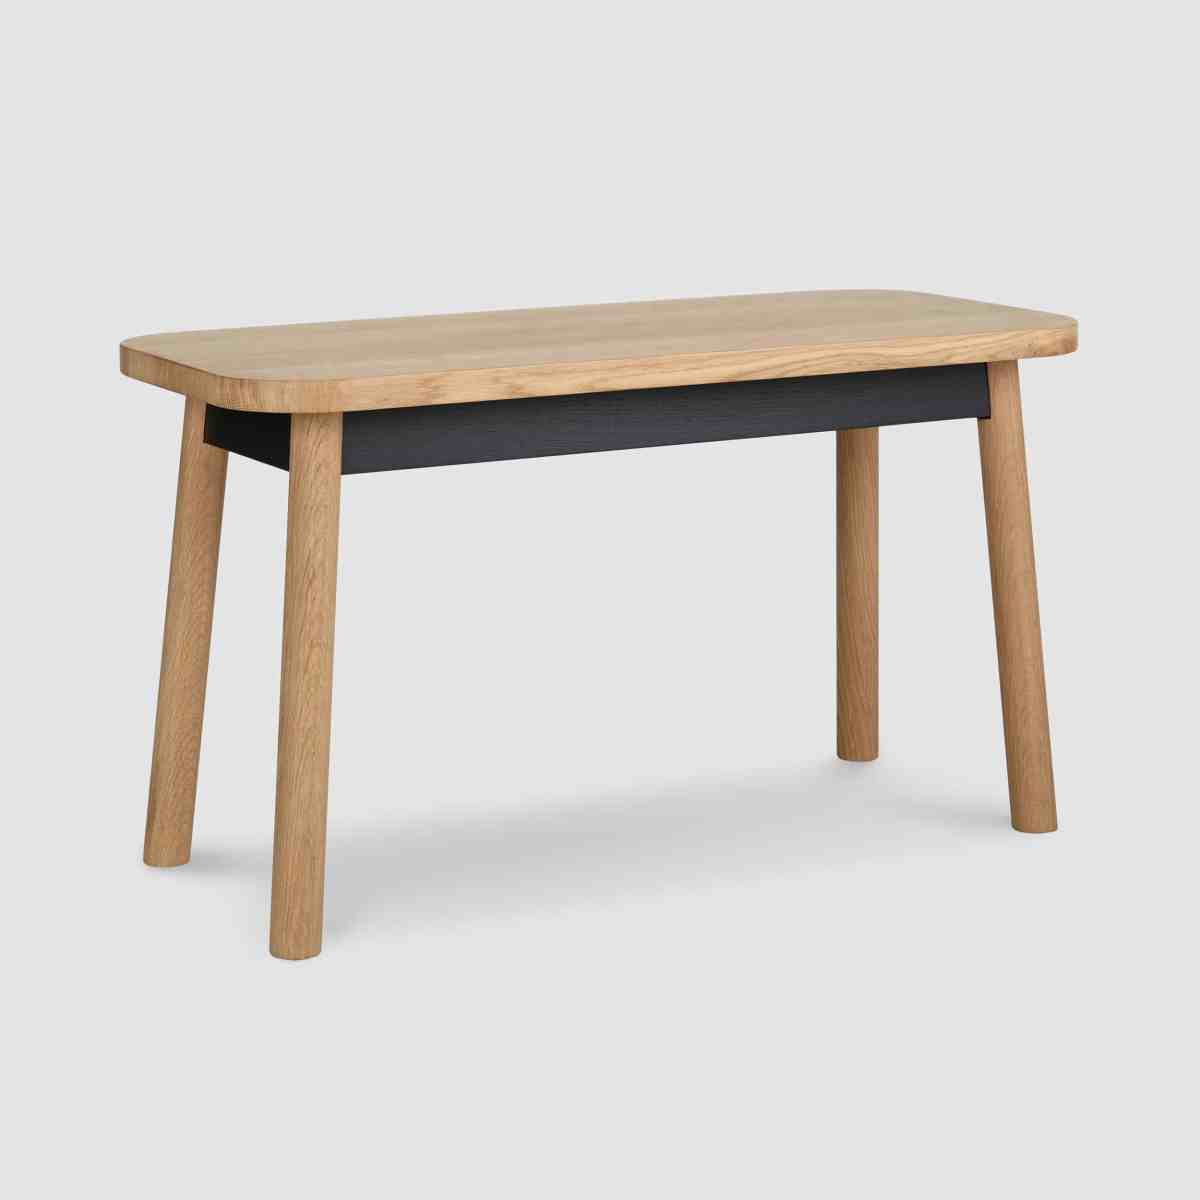 semley-bench-small-oak-another-country-001